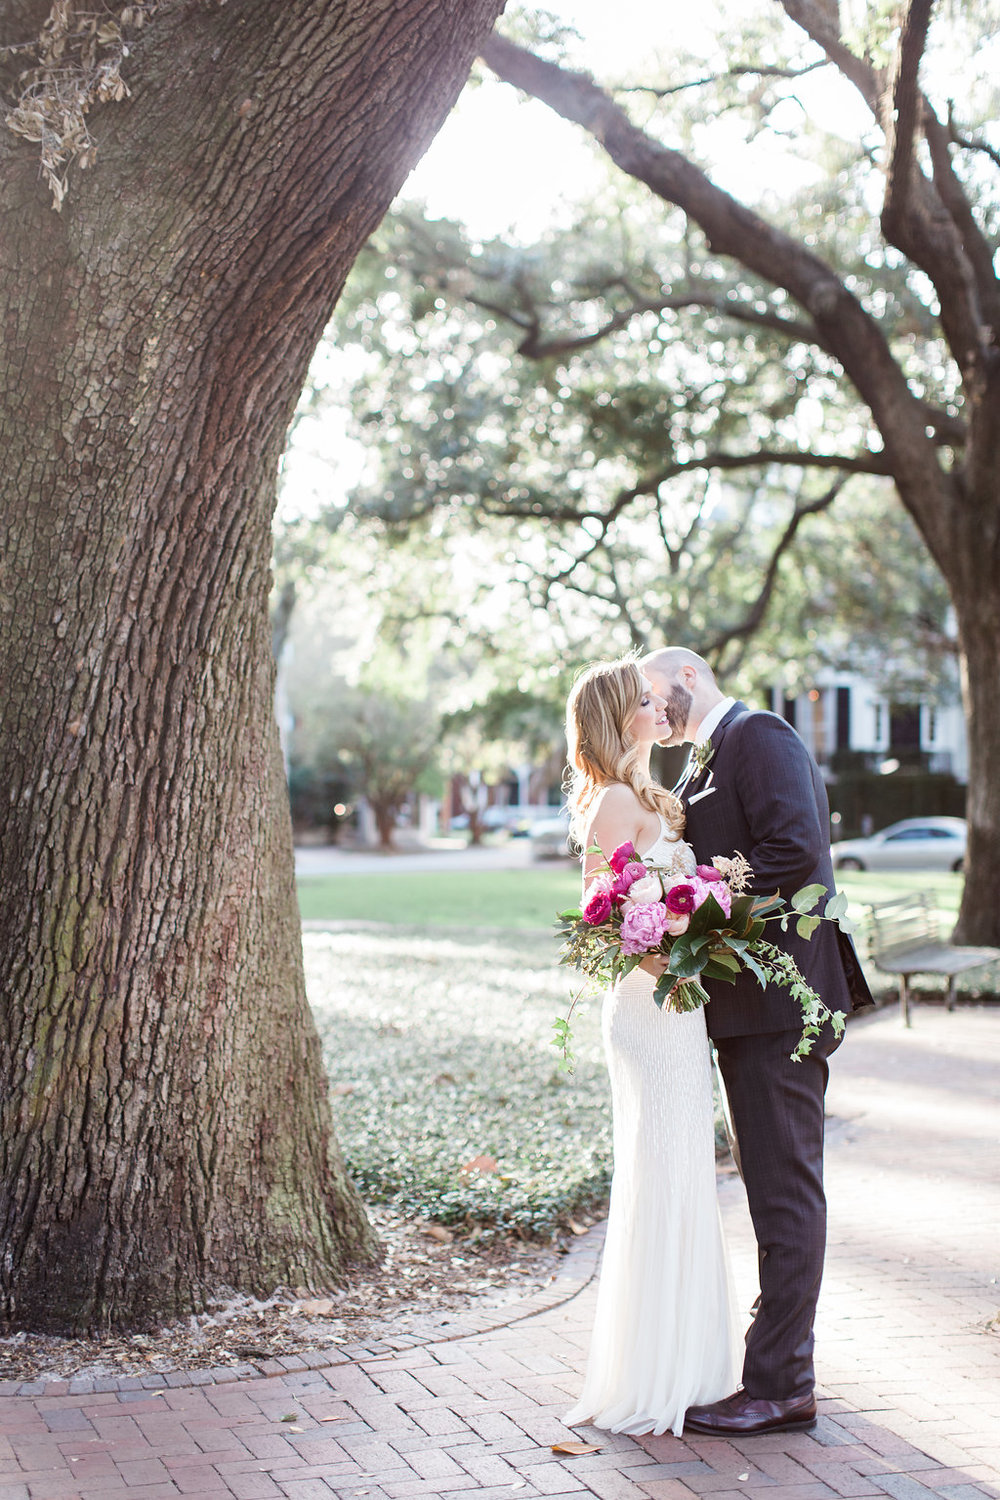 helen-tom-apt-b-photography-savannah-weddings-ivory-and-beau-bridal-boutique-savannah-bridal-boutique-savannah-florist-georgia-state-railroad-museum-wedding-colorful-rustic-wedding-savannah-florist-15.JPG